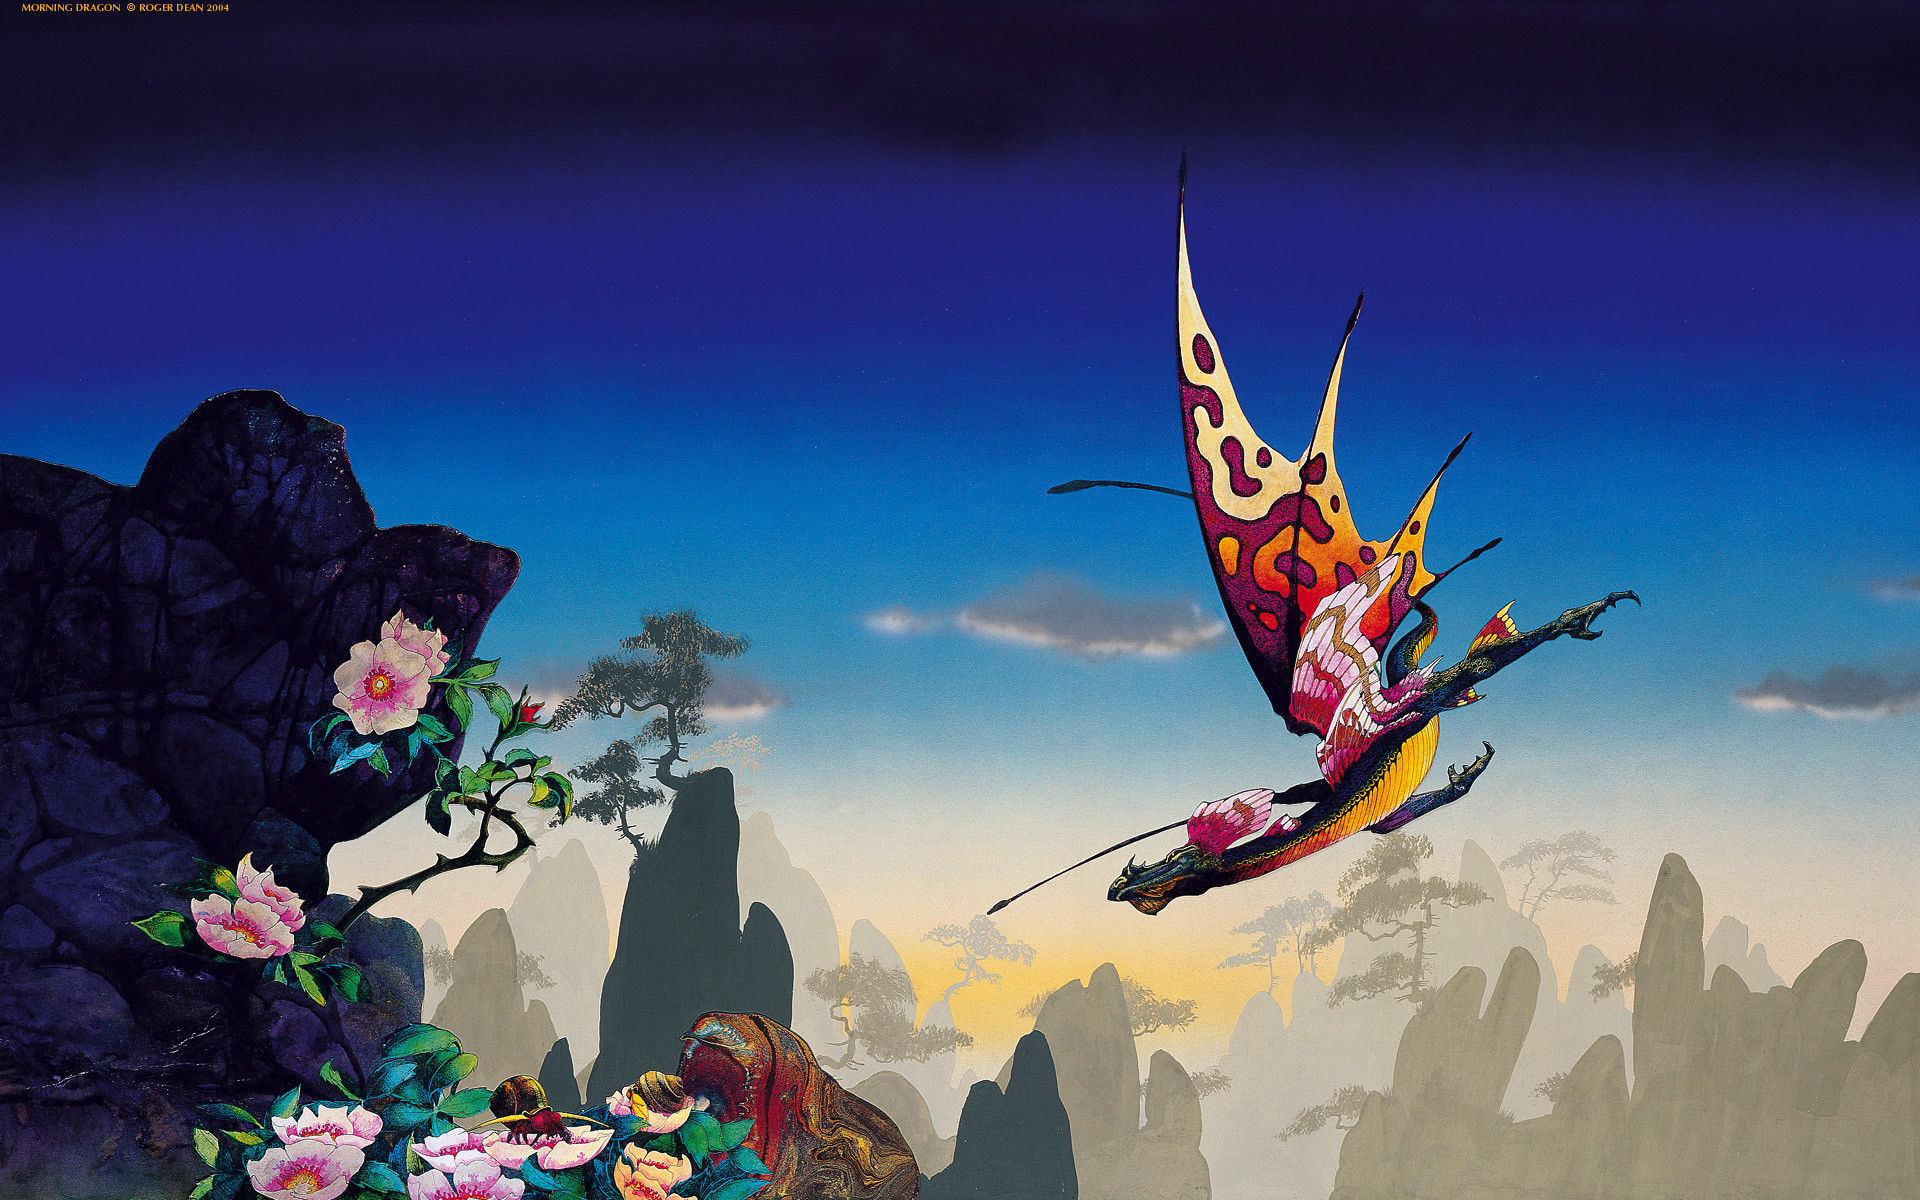 roger dean wallpaper 73 pictures